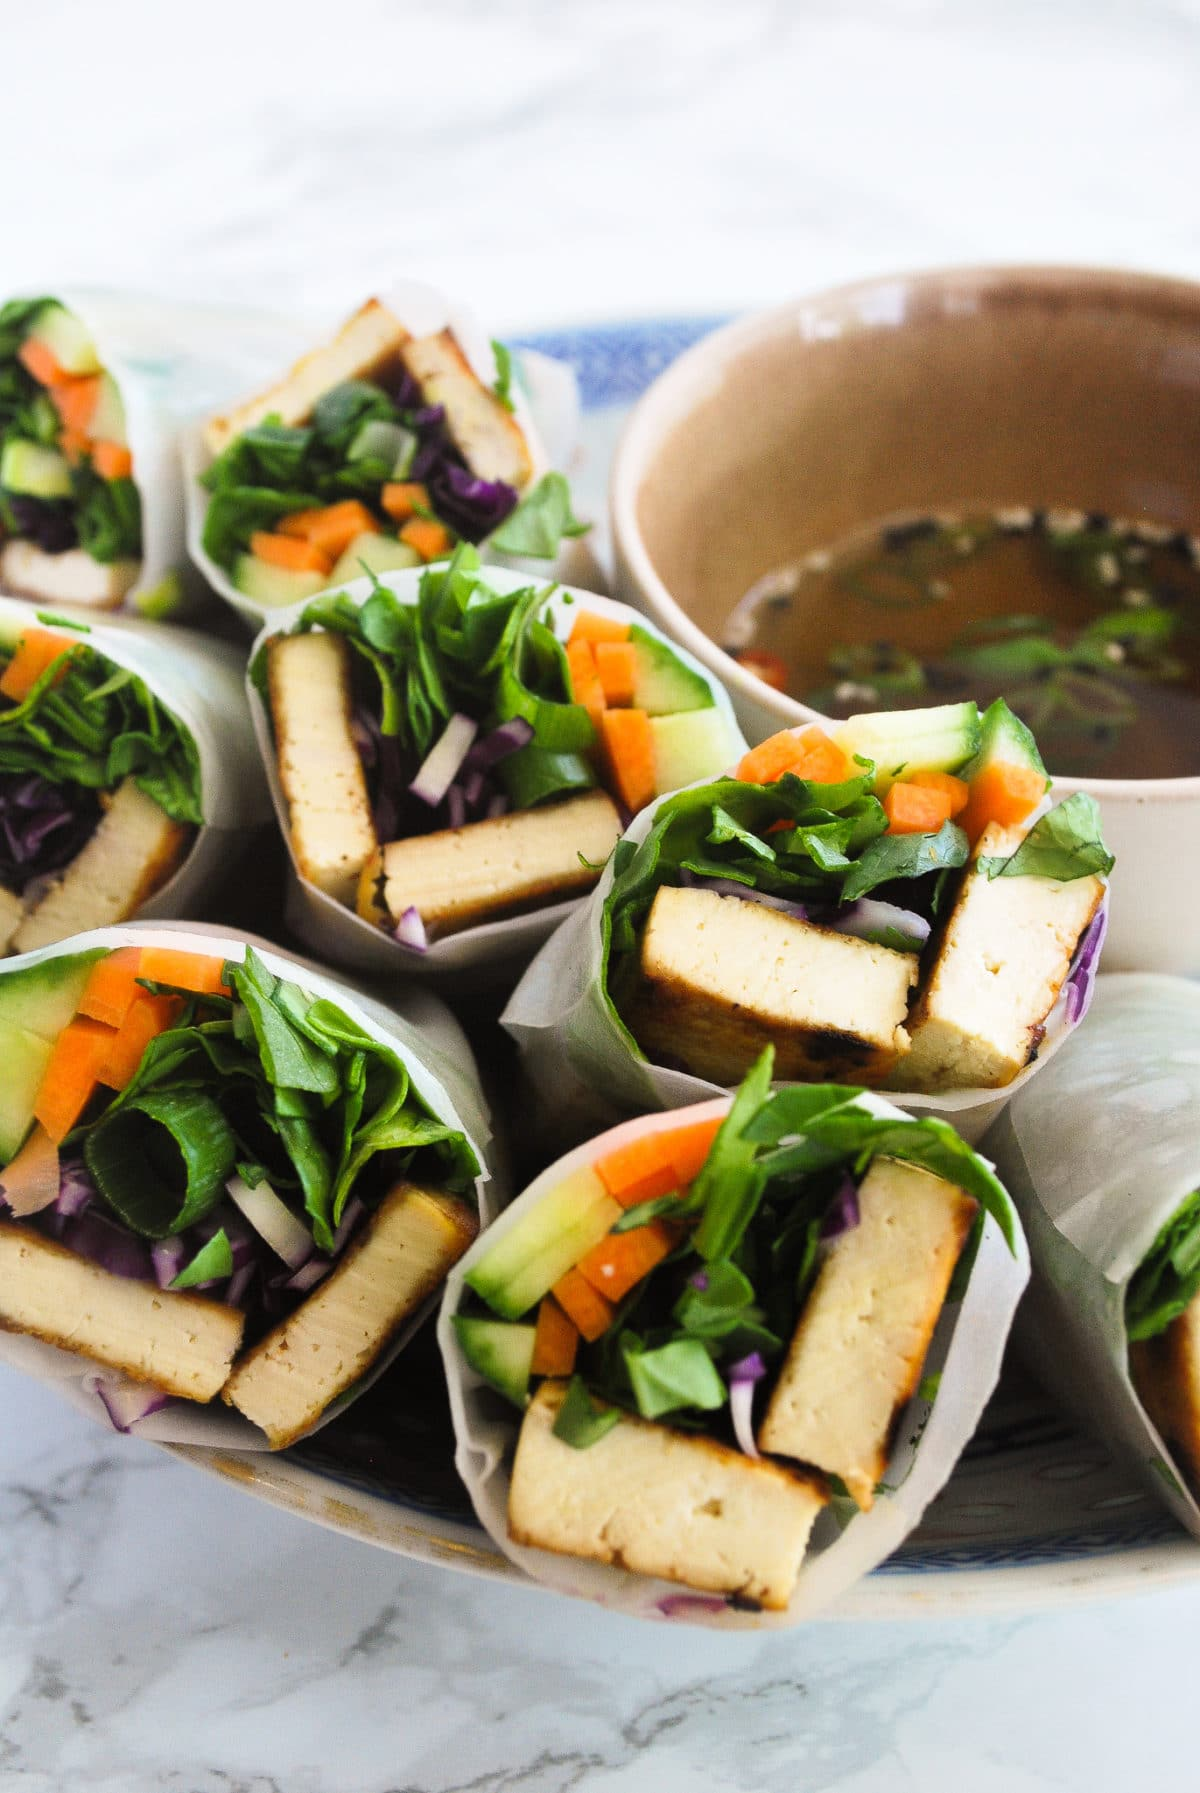 Bahn Mi summer rolls in a bowl next to dipping sauce.